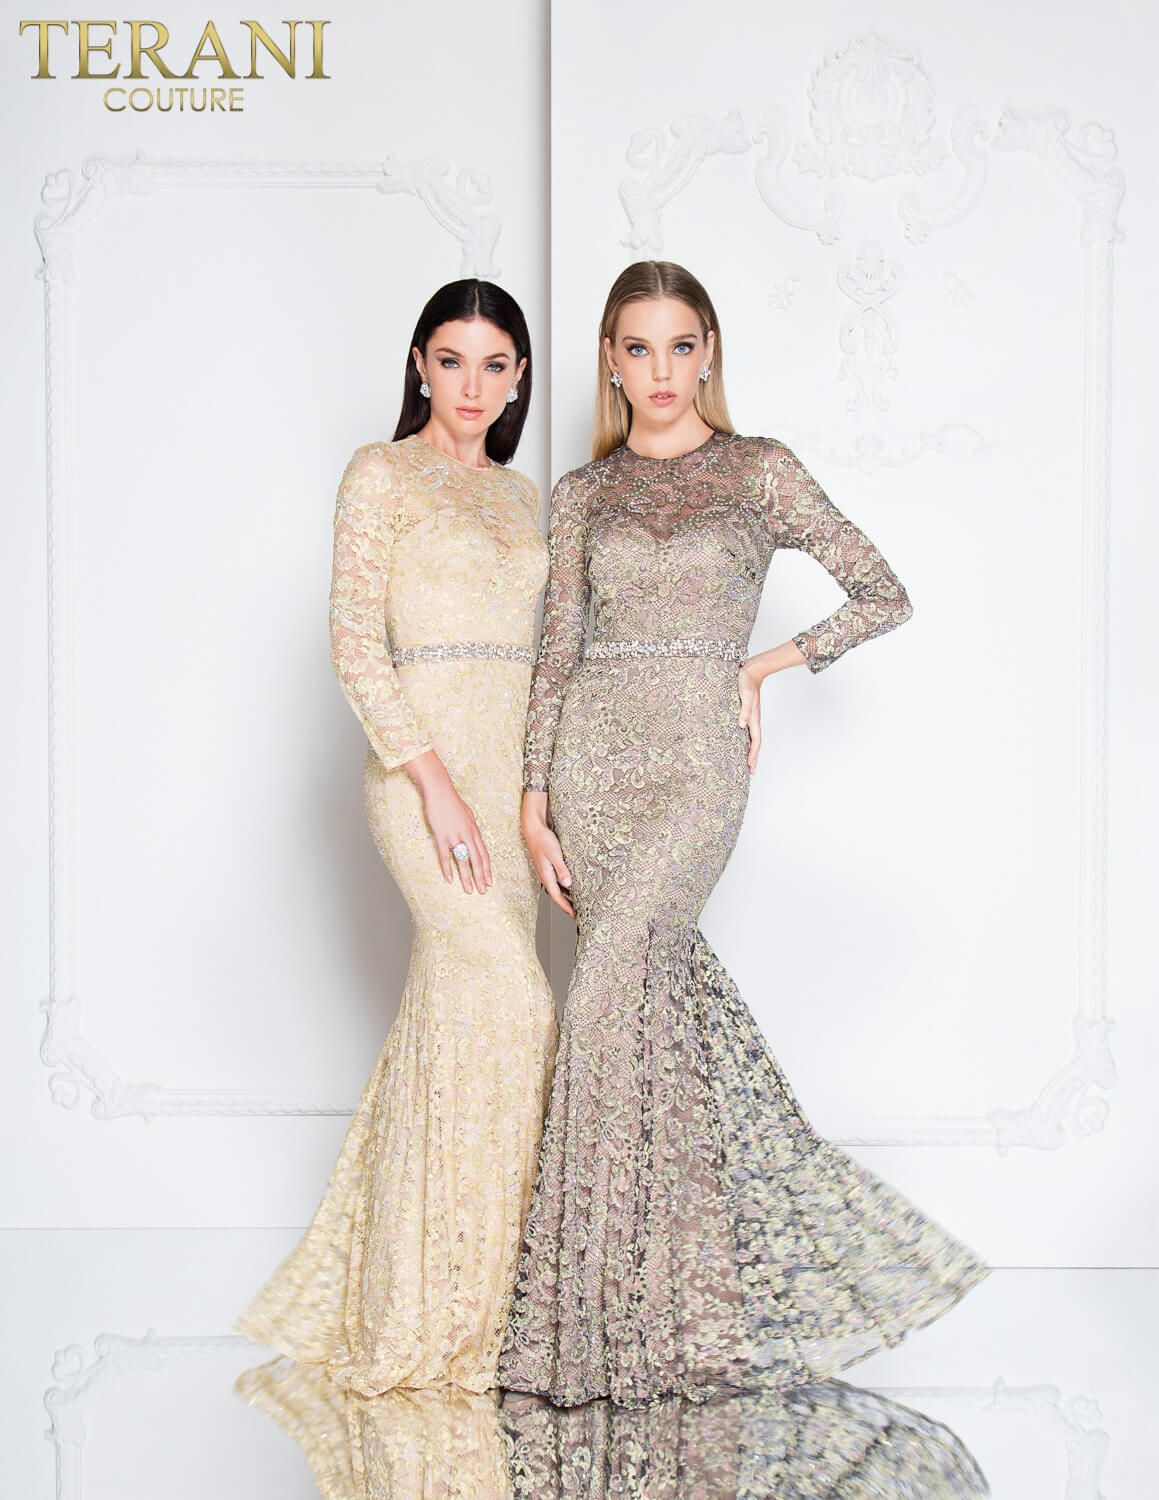 Long sleeved laced gown with embellished belt and mermaid finish